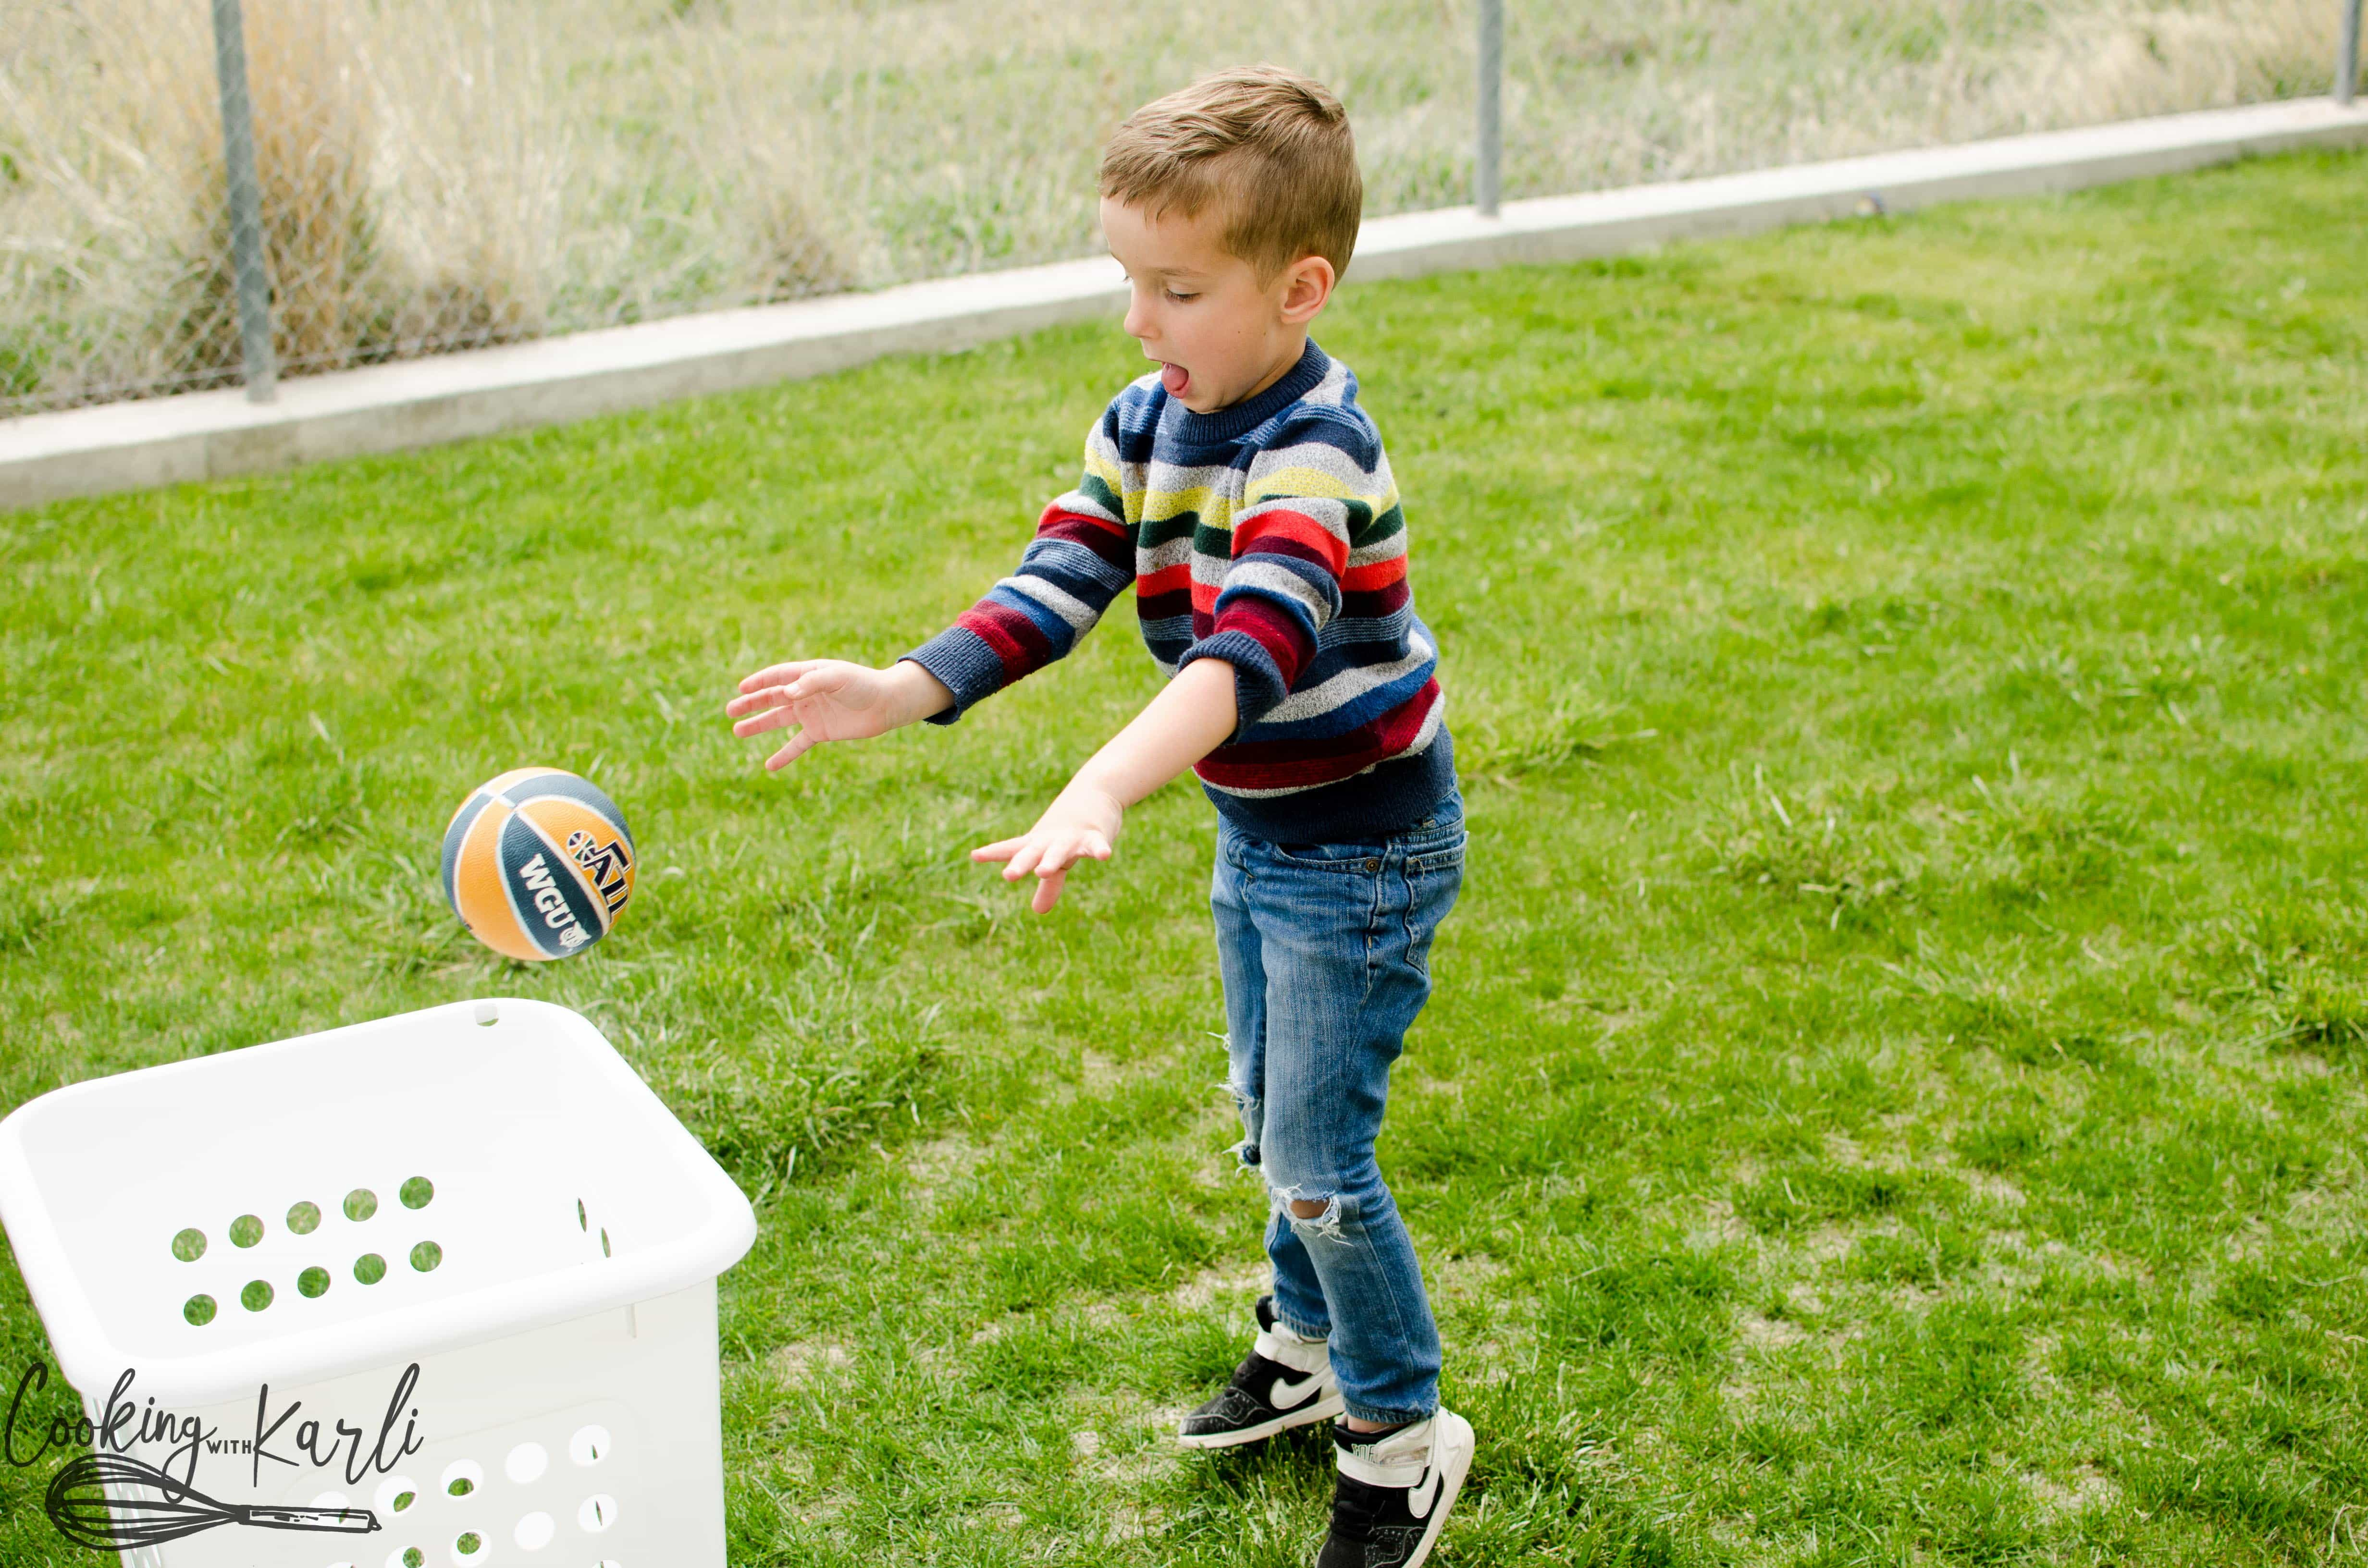 Fun kid's activities don't have to cost money! Grab a laundry basket and ball, play 'basket' ball!